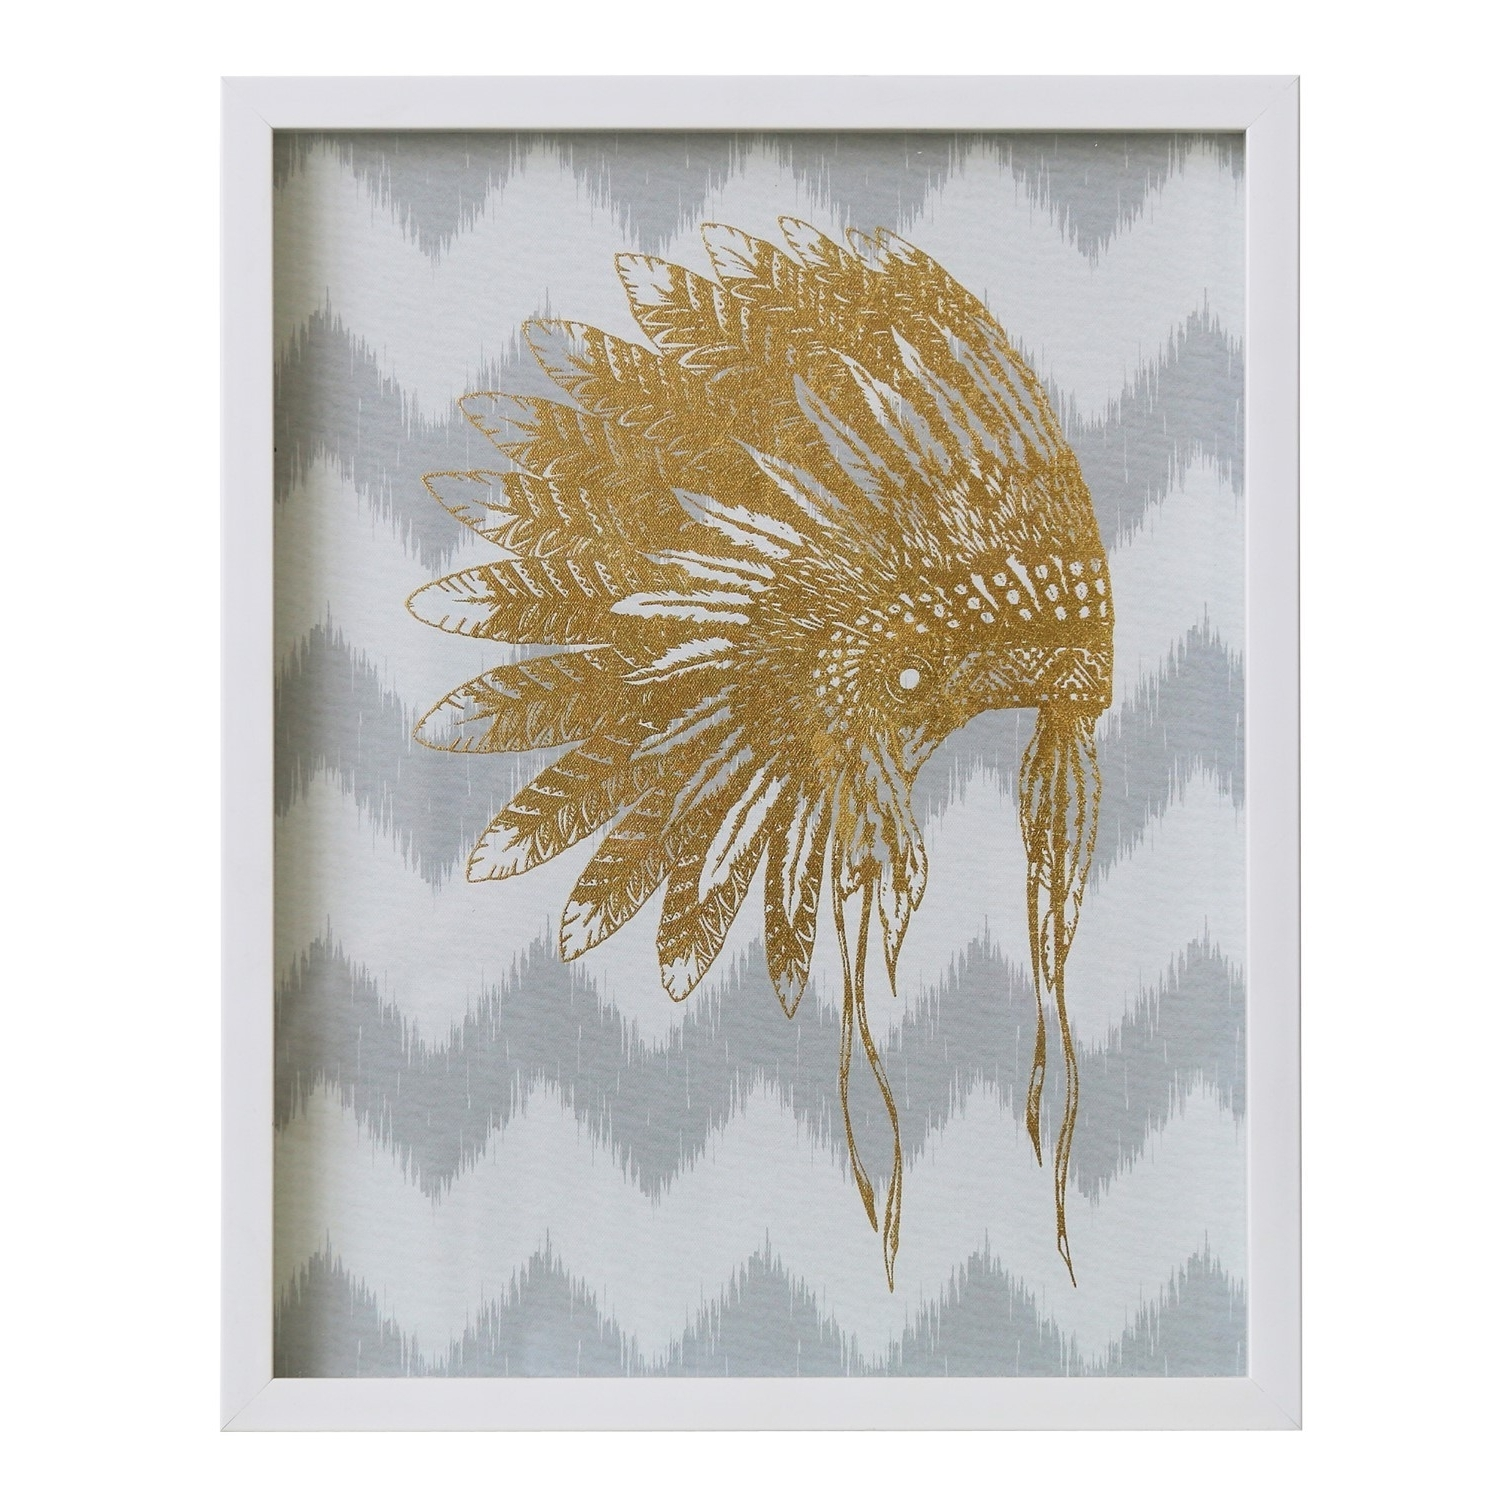 Widely Used Wall Art/canvas/mdf/perspex Frame/war Bonnet In Gold Foil/16*2*20/ 1 With Regard To Wall Art (View 13 of 15)